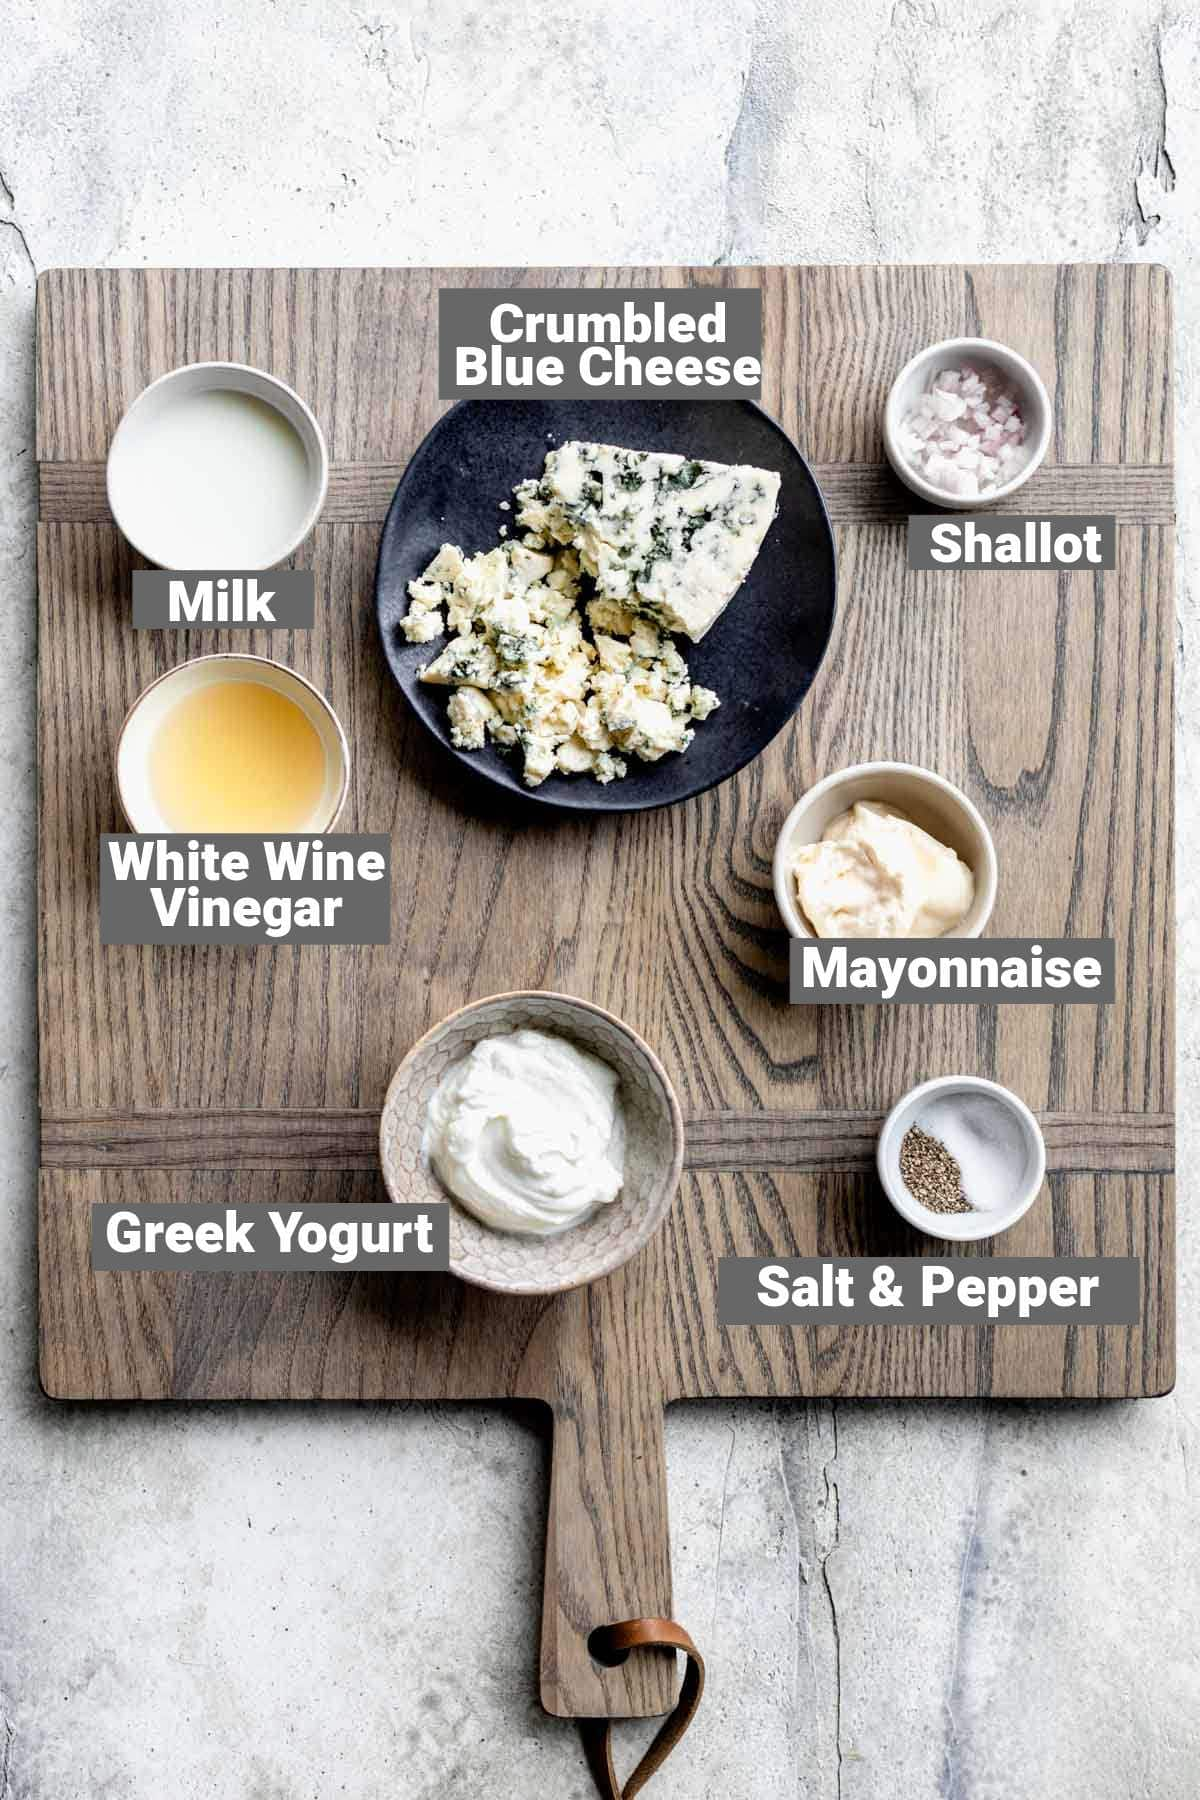 the ingredients for this recipe with text overlay